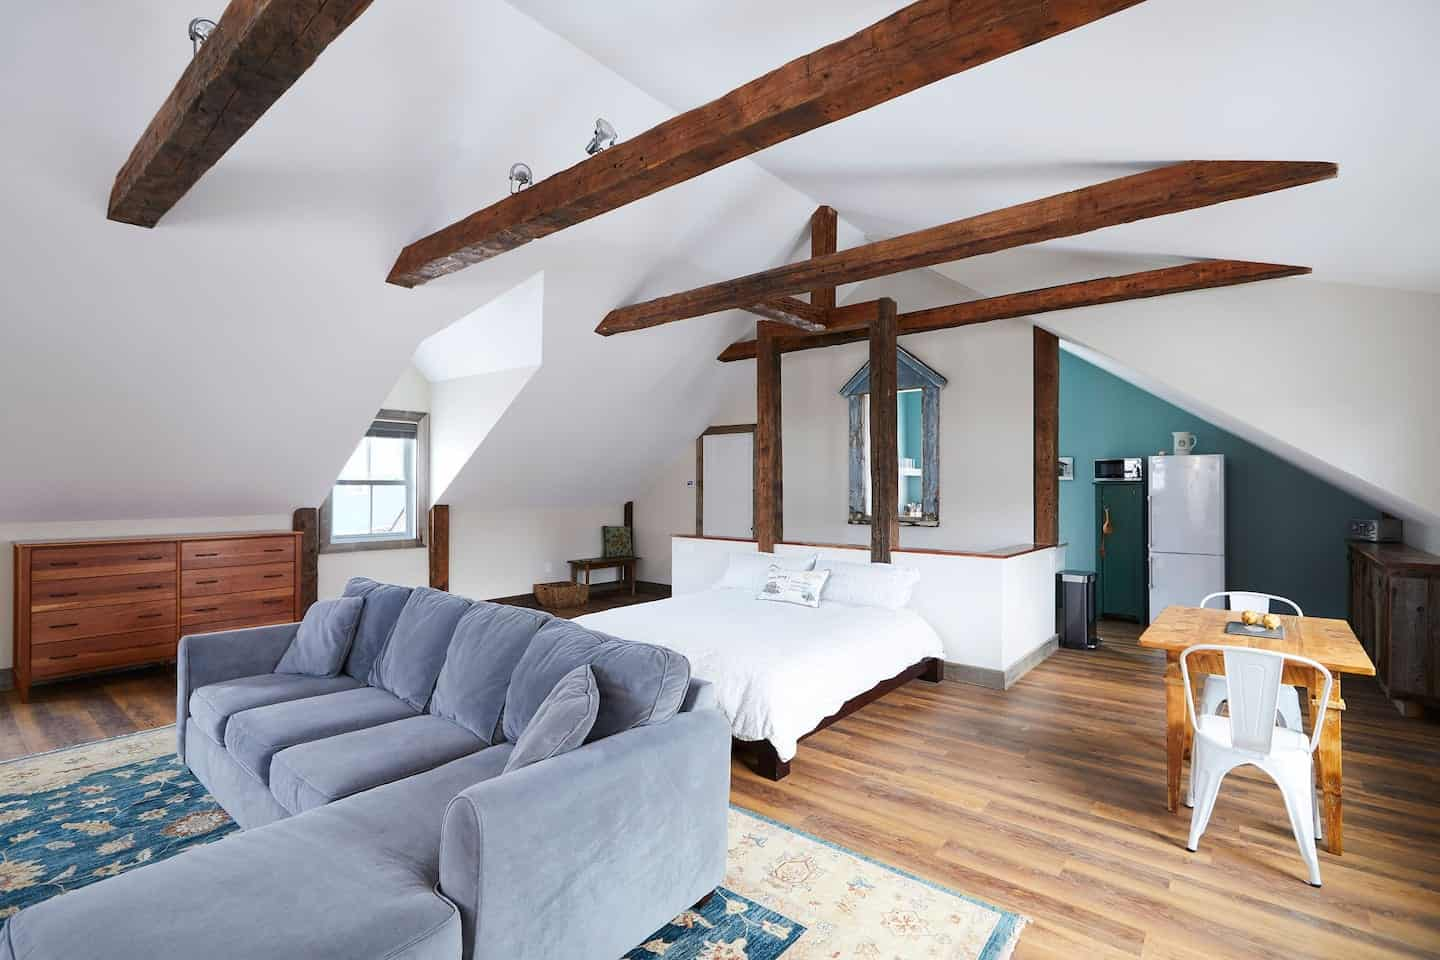 Image of Airbnb rental in Stowe, Vermont